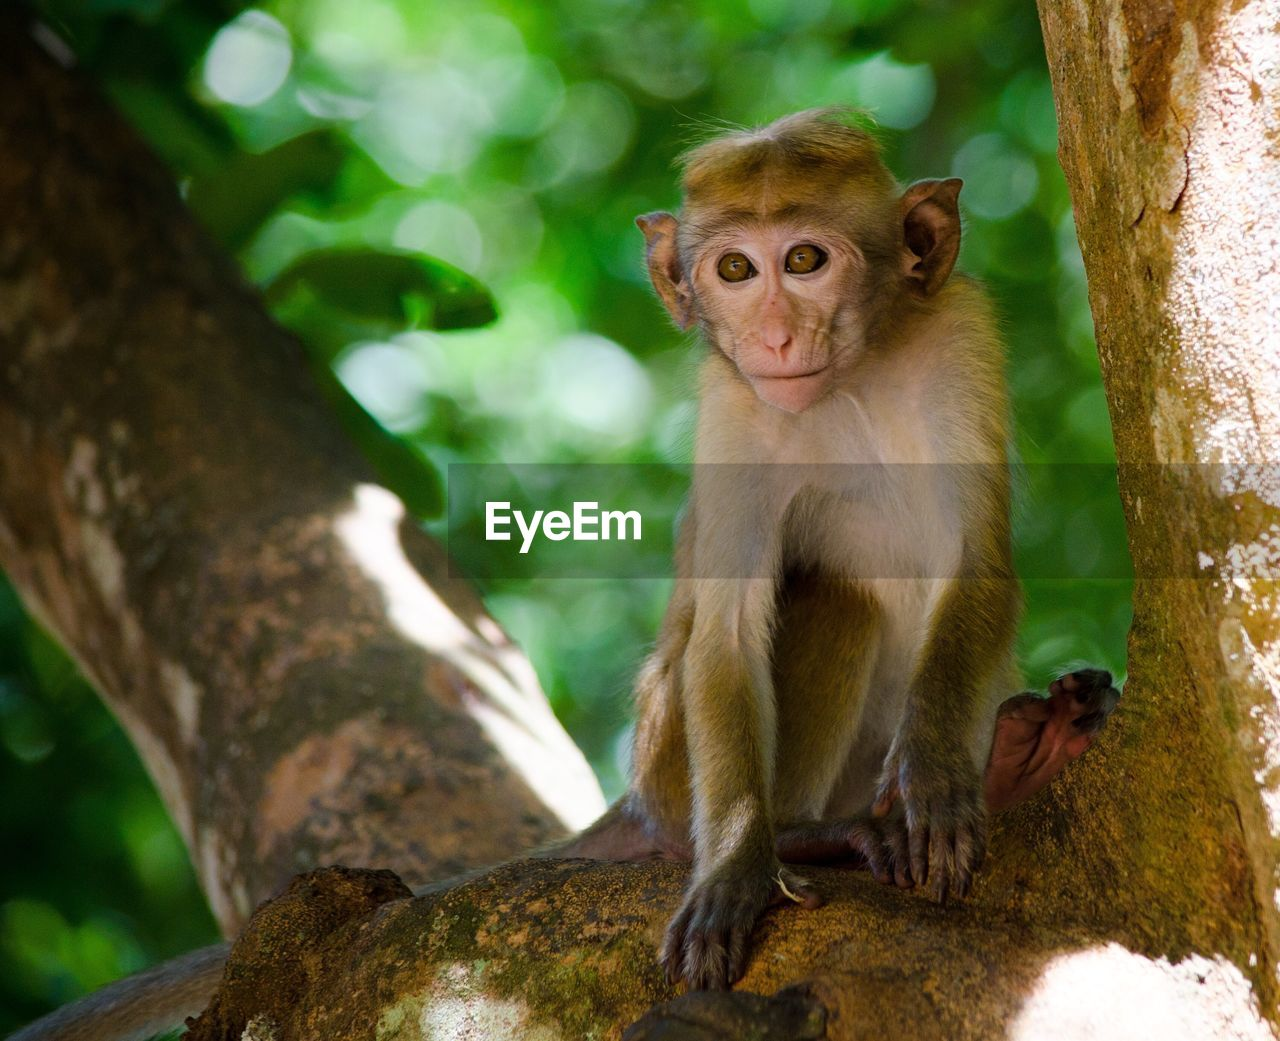 monkey, mammal, animals in the wild, animal themes, animal wildlife, day, no people, outdoors, nature, tree, sitting